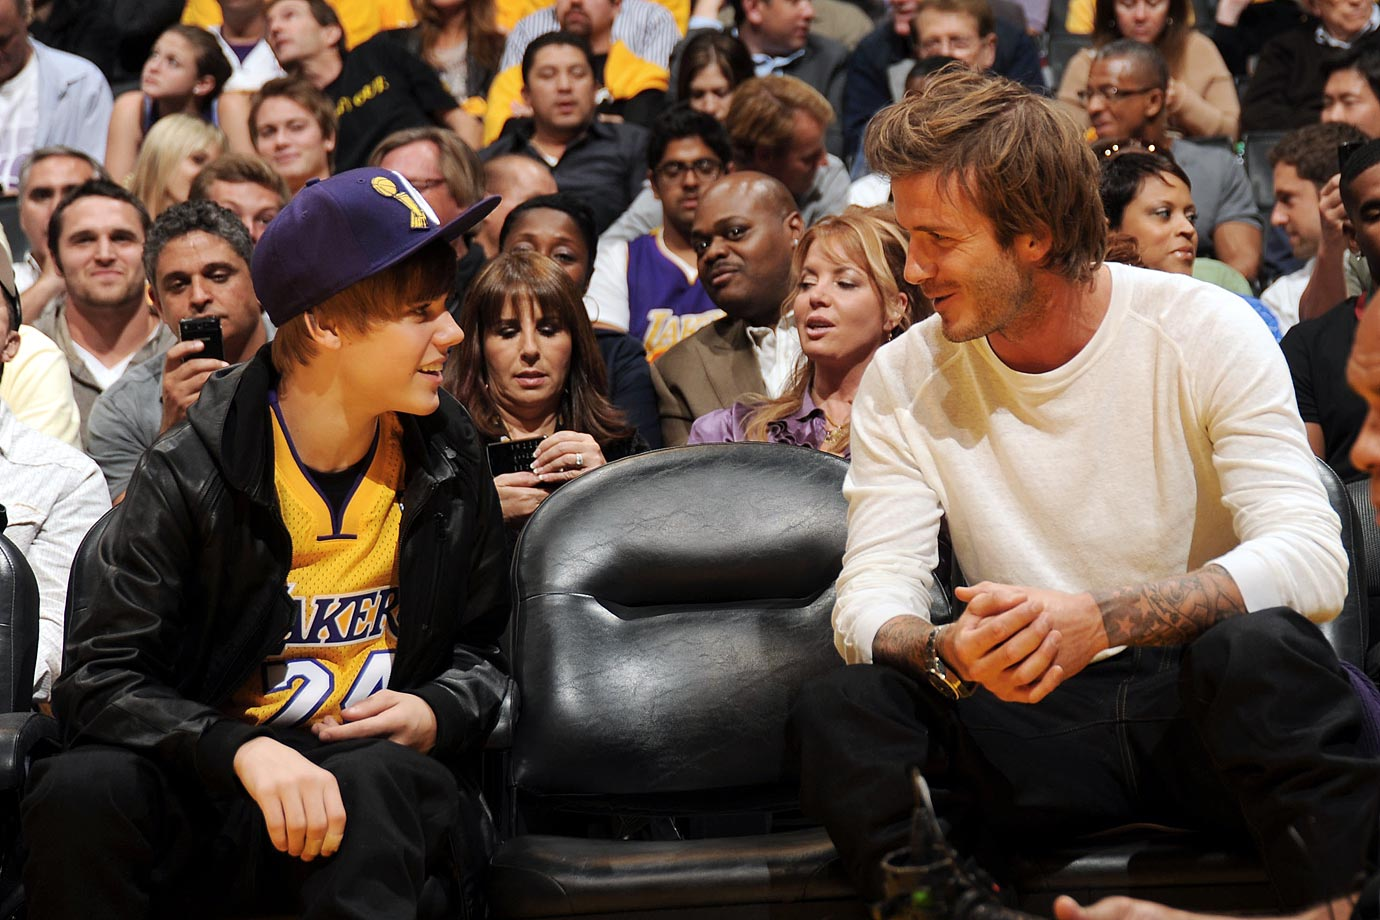 Oct. 26, 2010: Los Angeles Lakers vs. Houston Rockets at Staples Center in Los Angeles